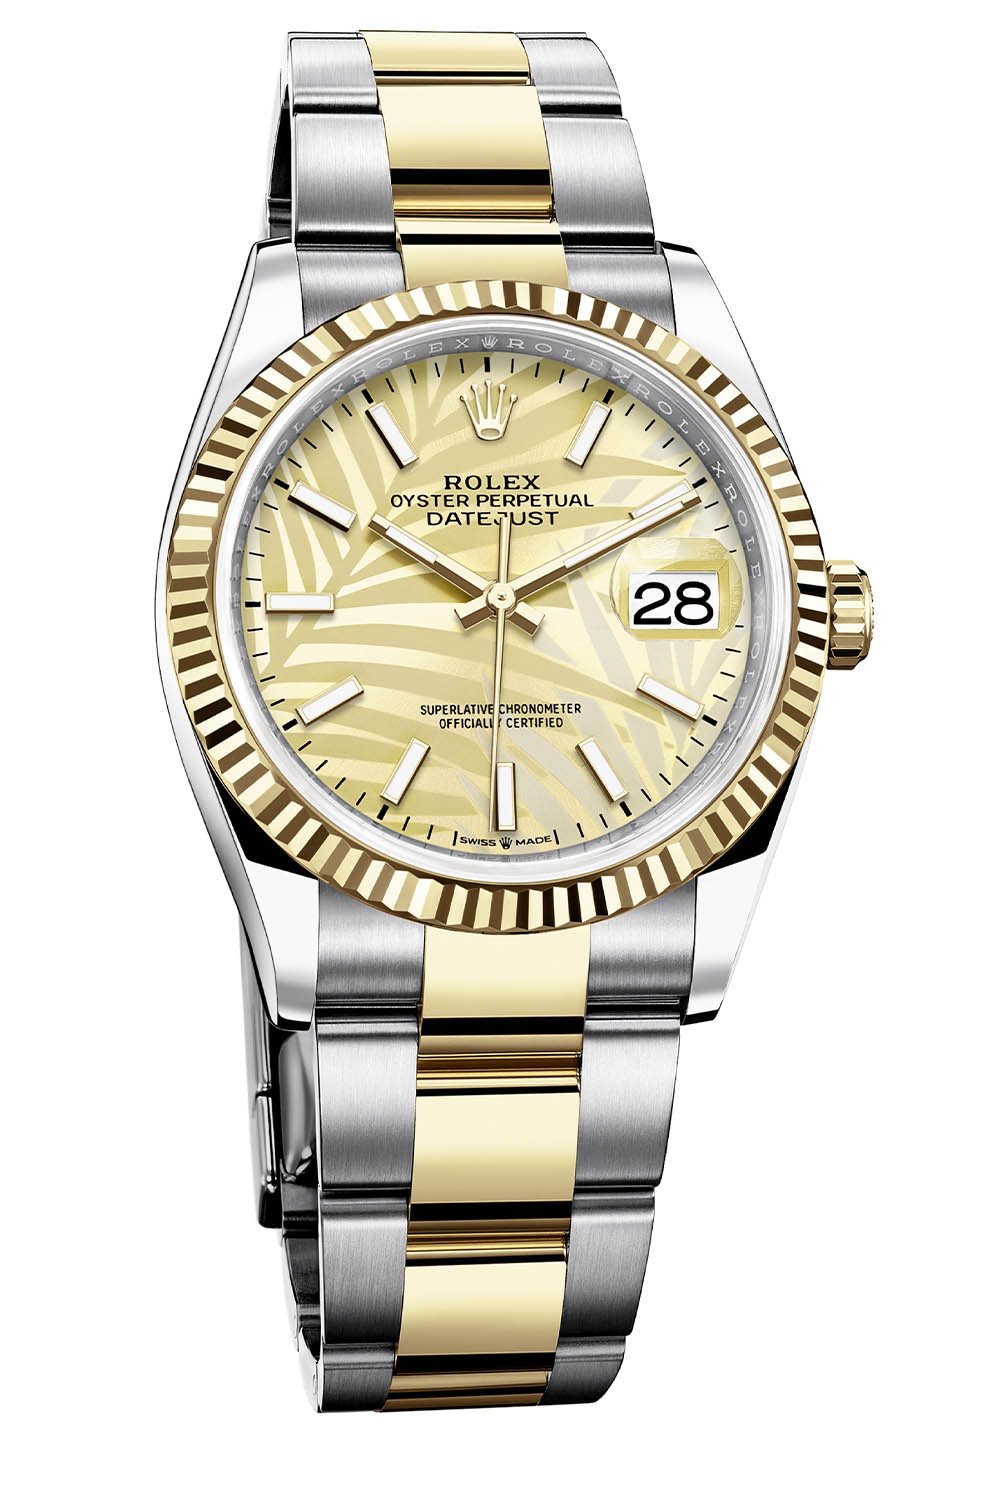 Rolex Oyster Perpetual Datejust 36 palm dial 2